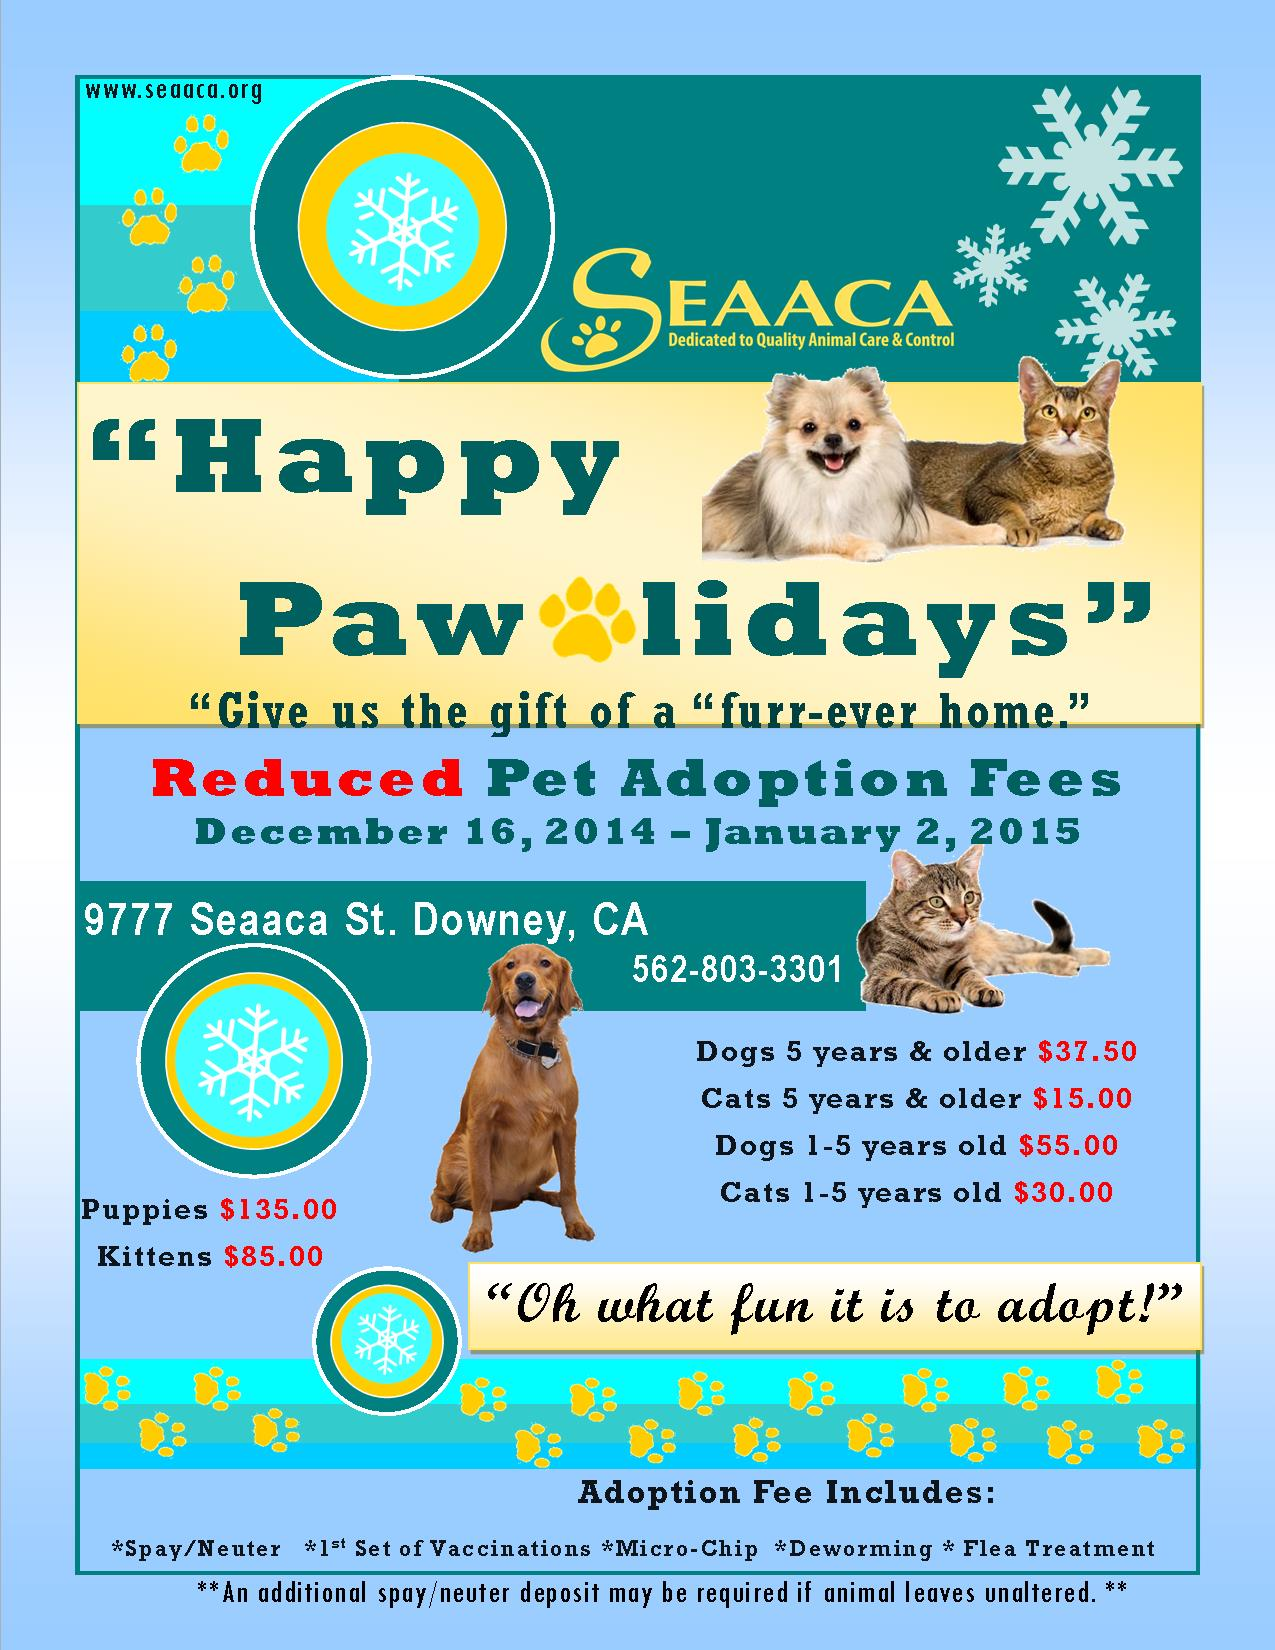 December 2014 Happy Pawlidays SS.JPG - 283.39 KB